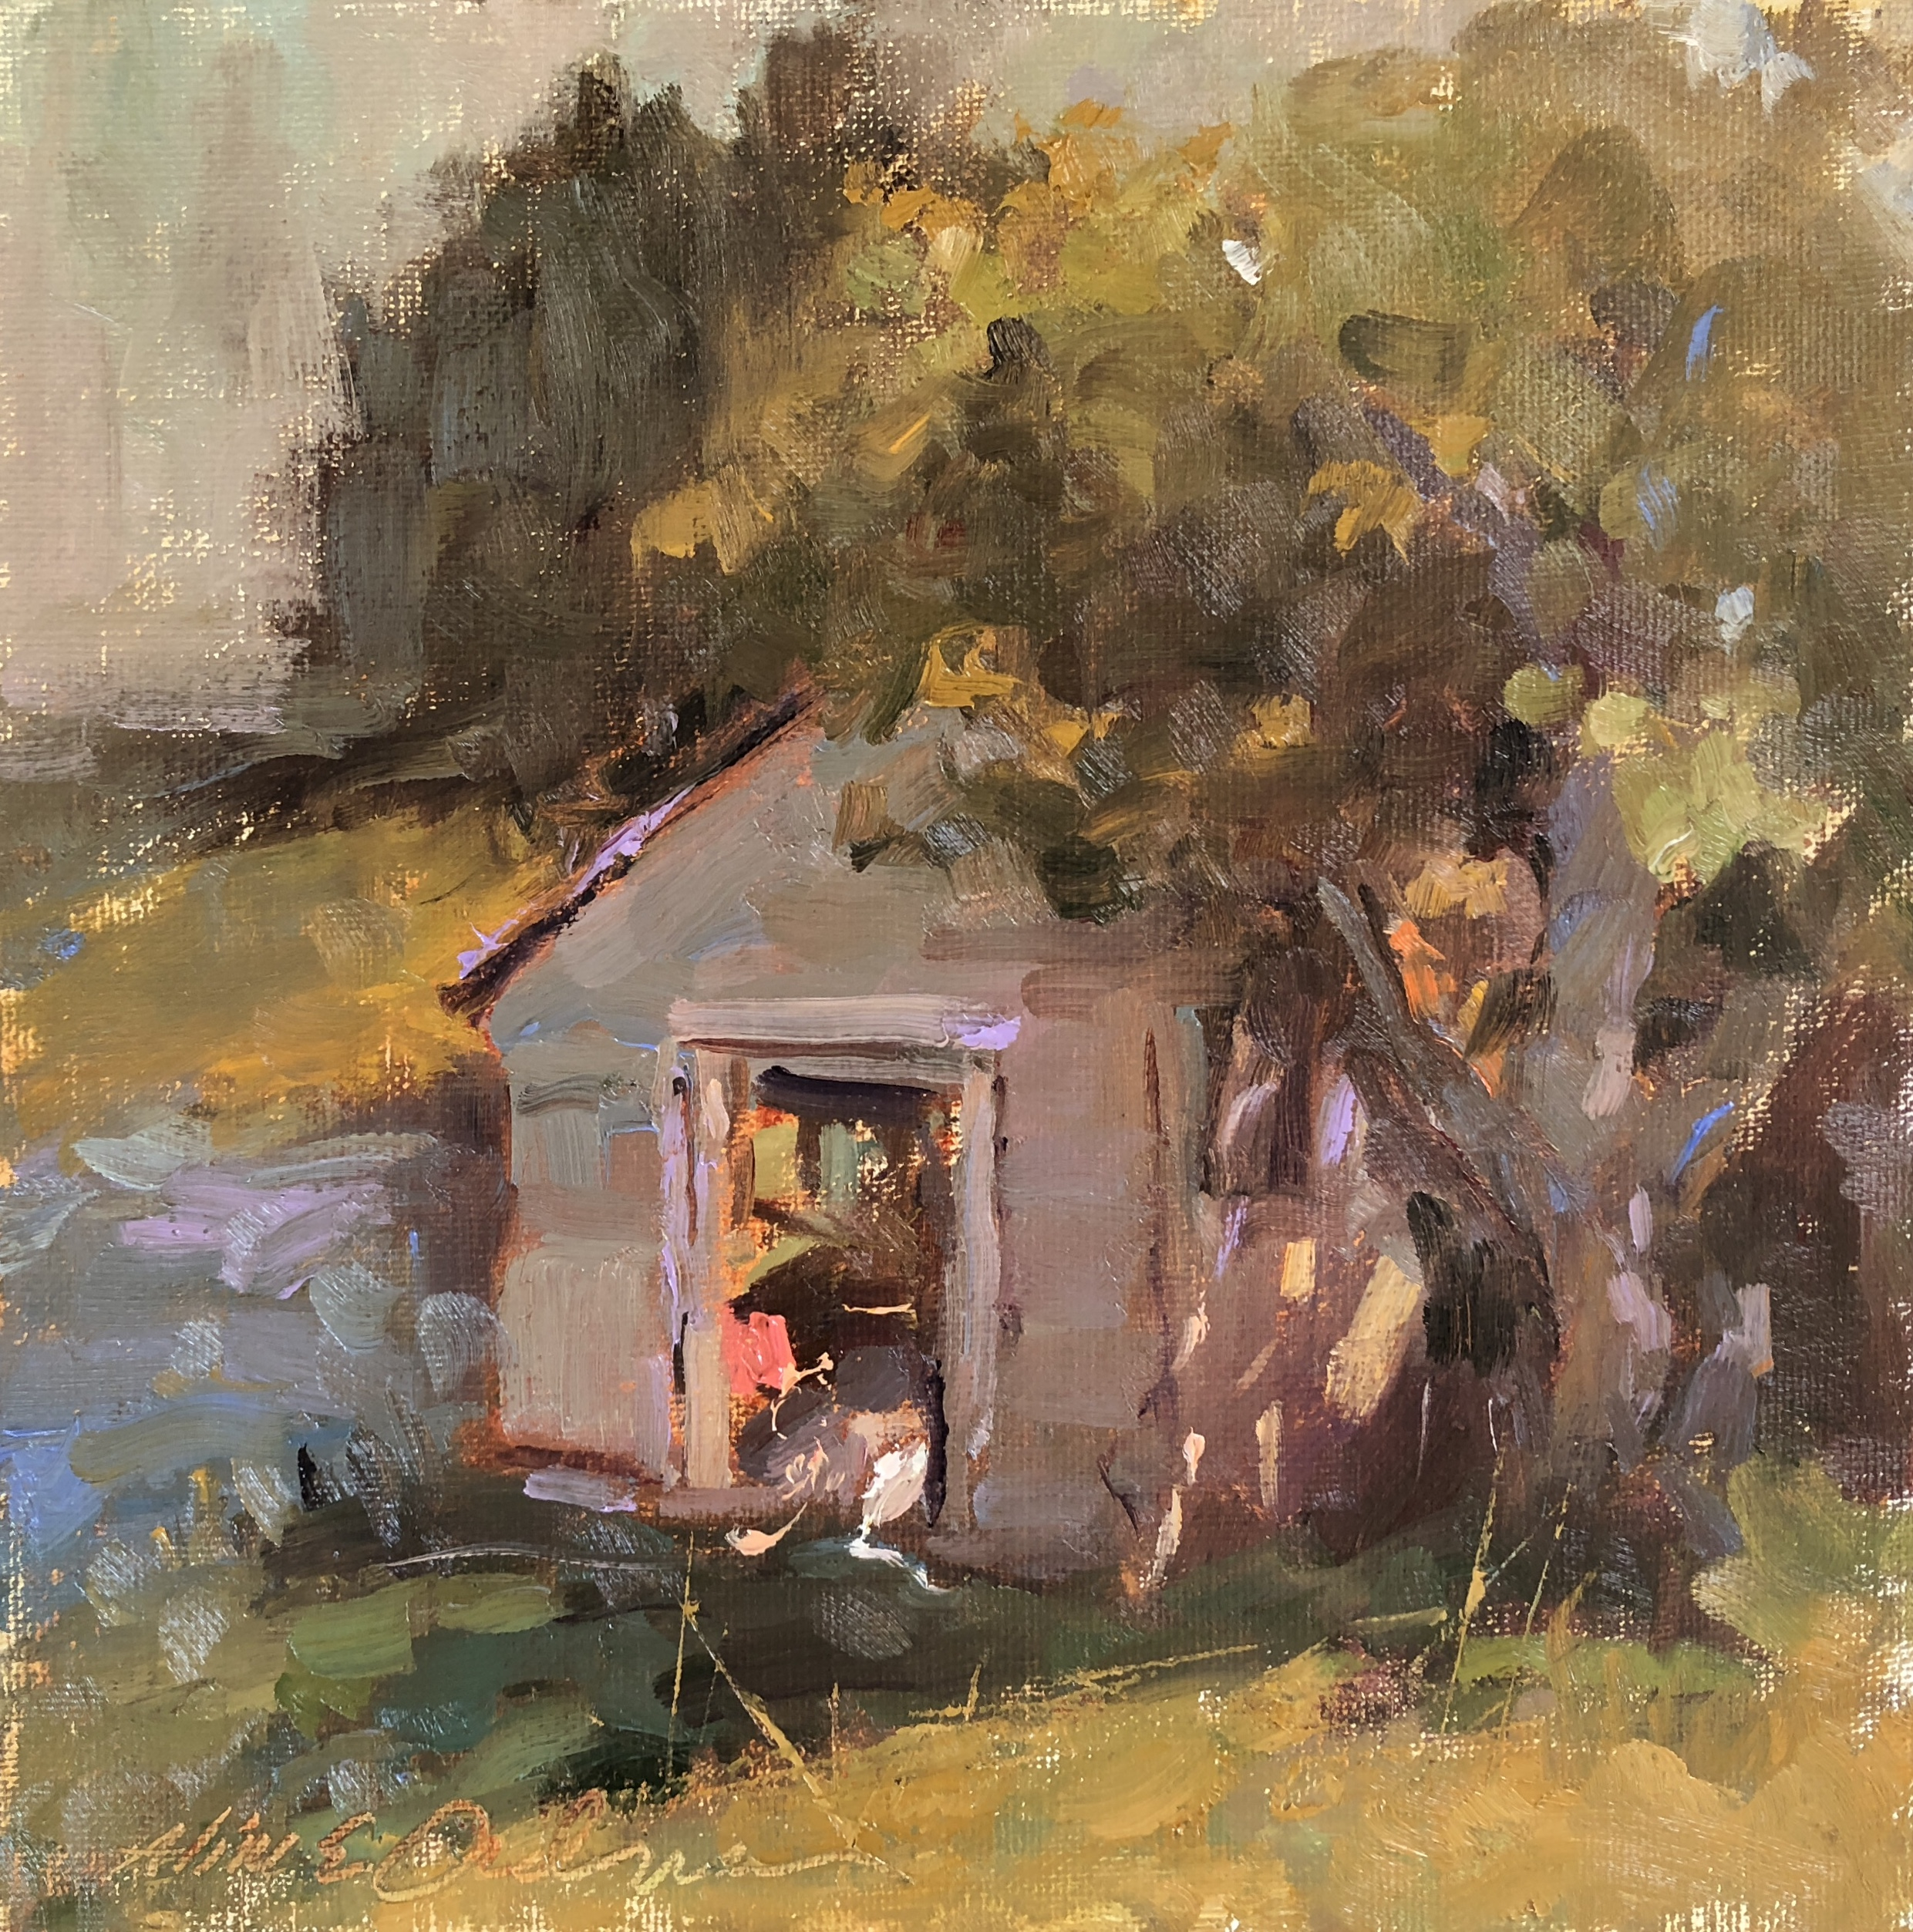 Little Shack 8 x 8 oil on board